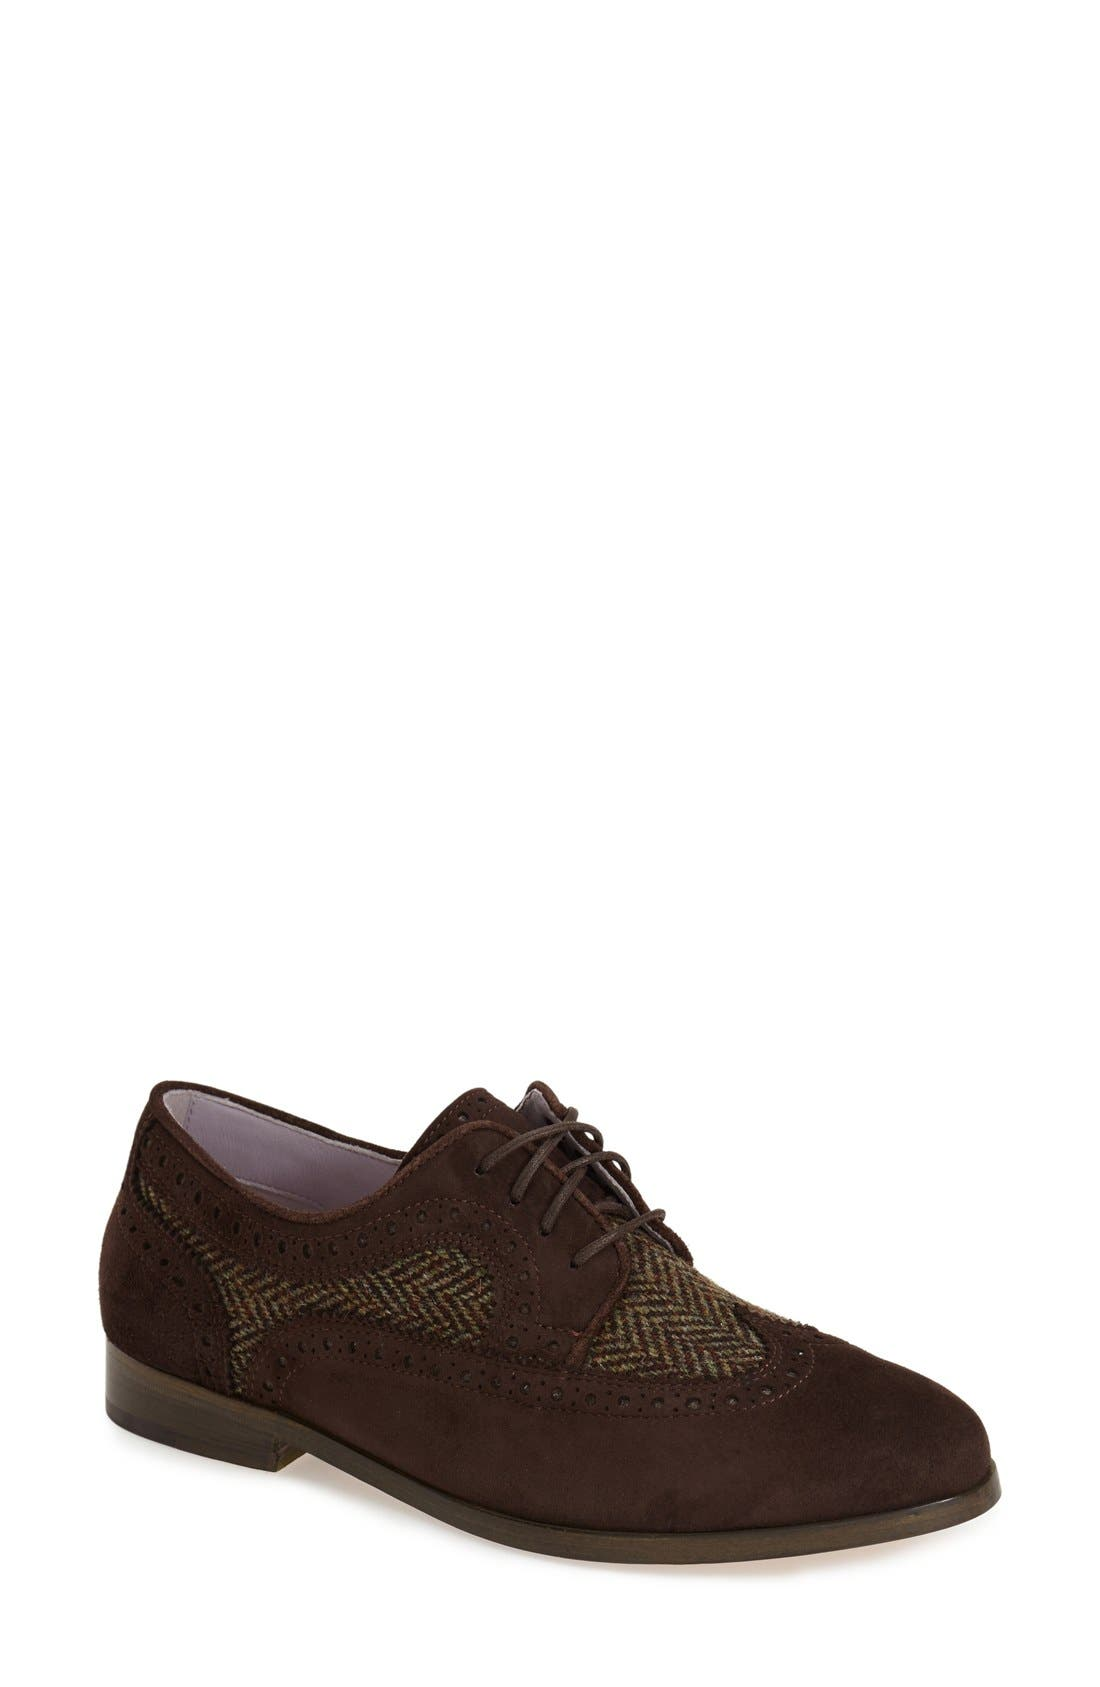 Main Image - Johnston & Murphy 'Dinah' Lace-Up Wingtip Oxford (Women)